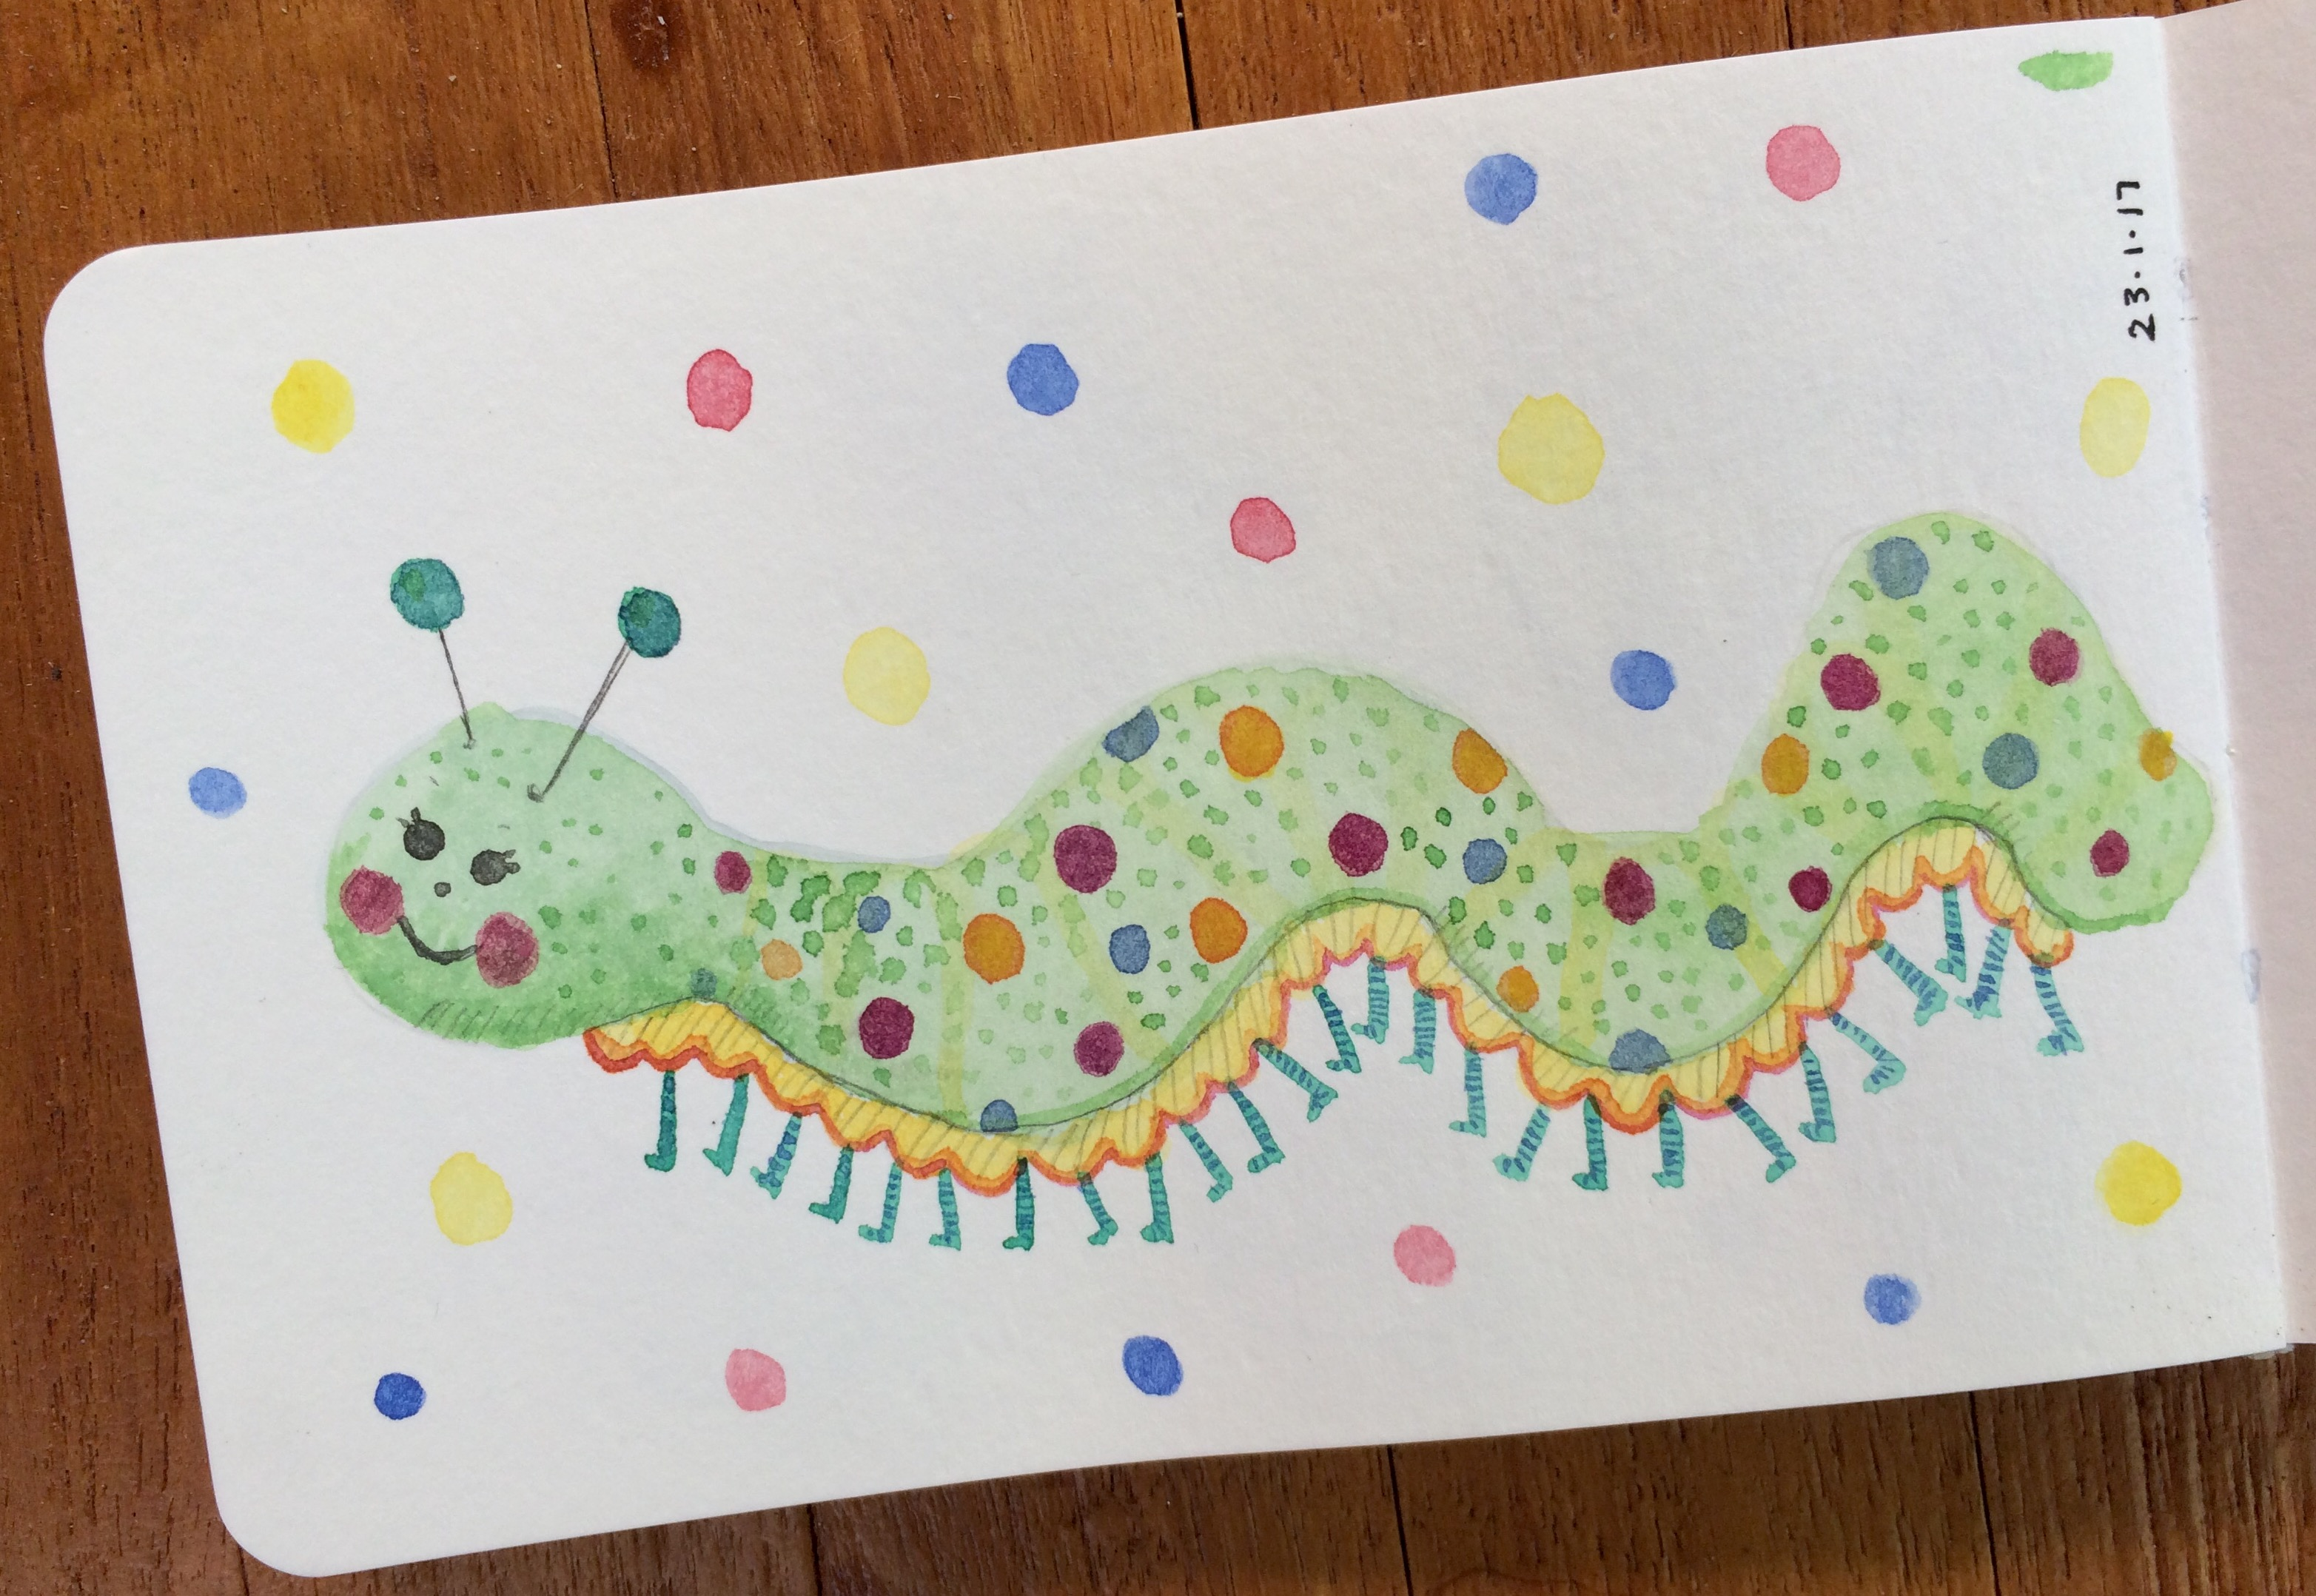 Daily watercolour - Party caterpillar by Amie Sabadin